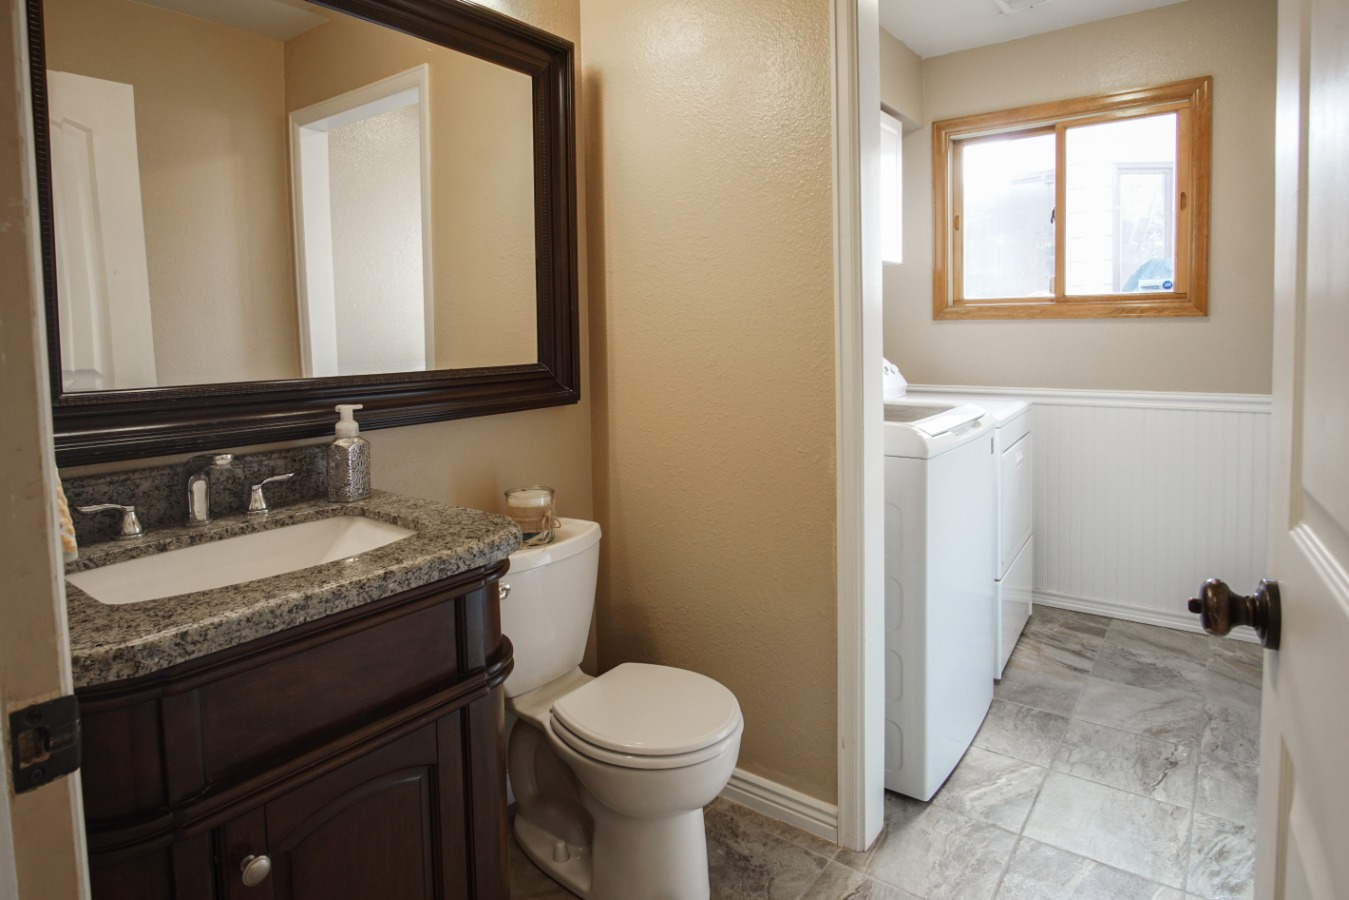 Powder room and laundry when entering from garage